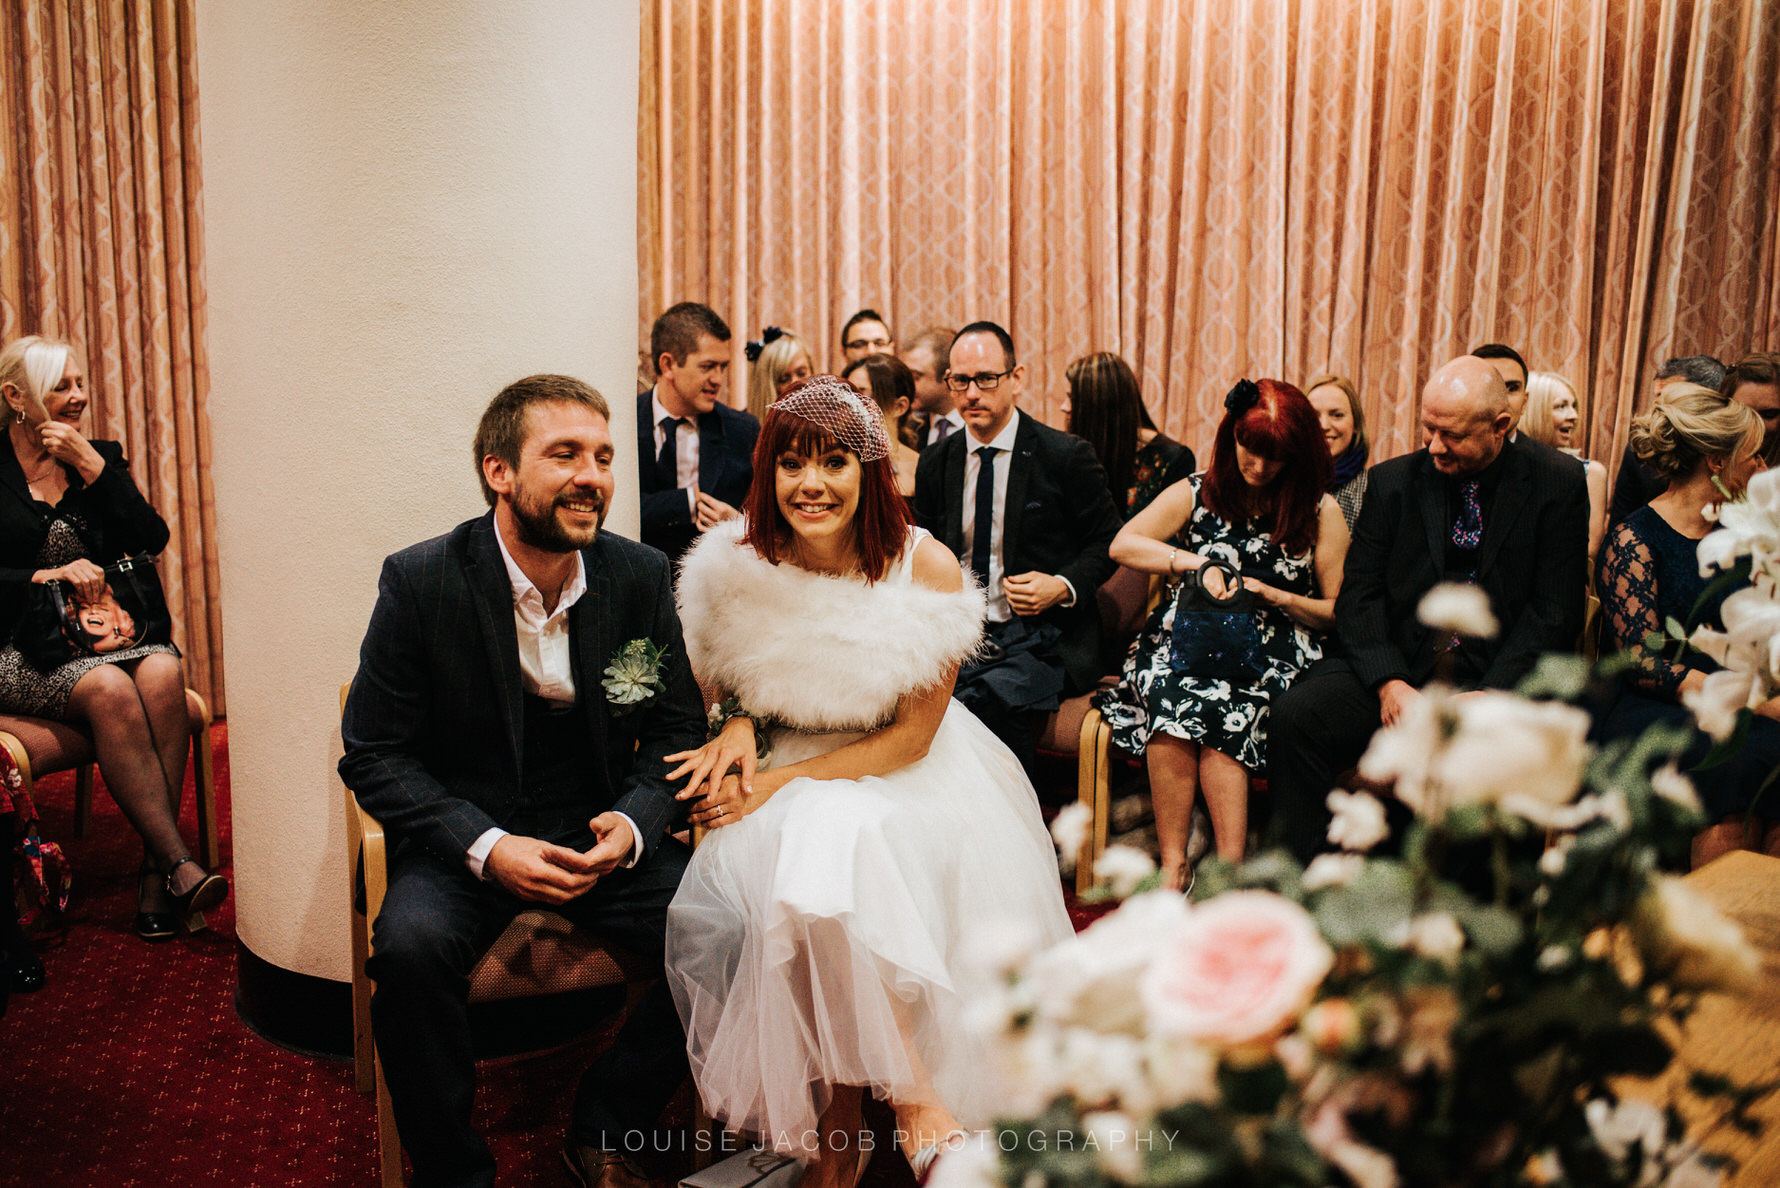 Documentary Wedding Photography bride and groom at Chester Registry Office